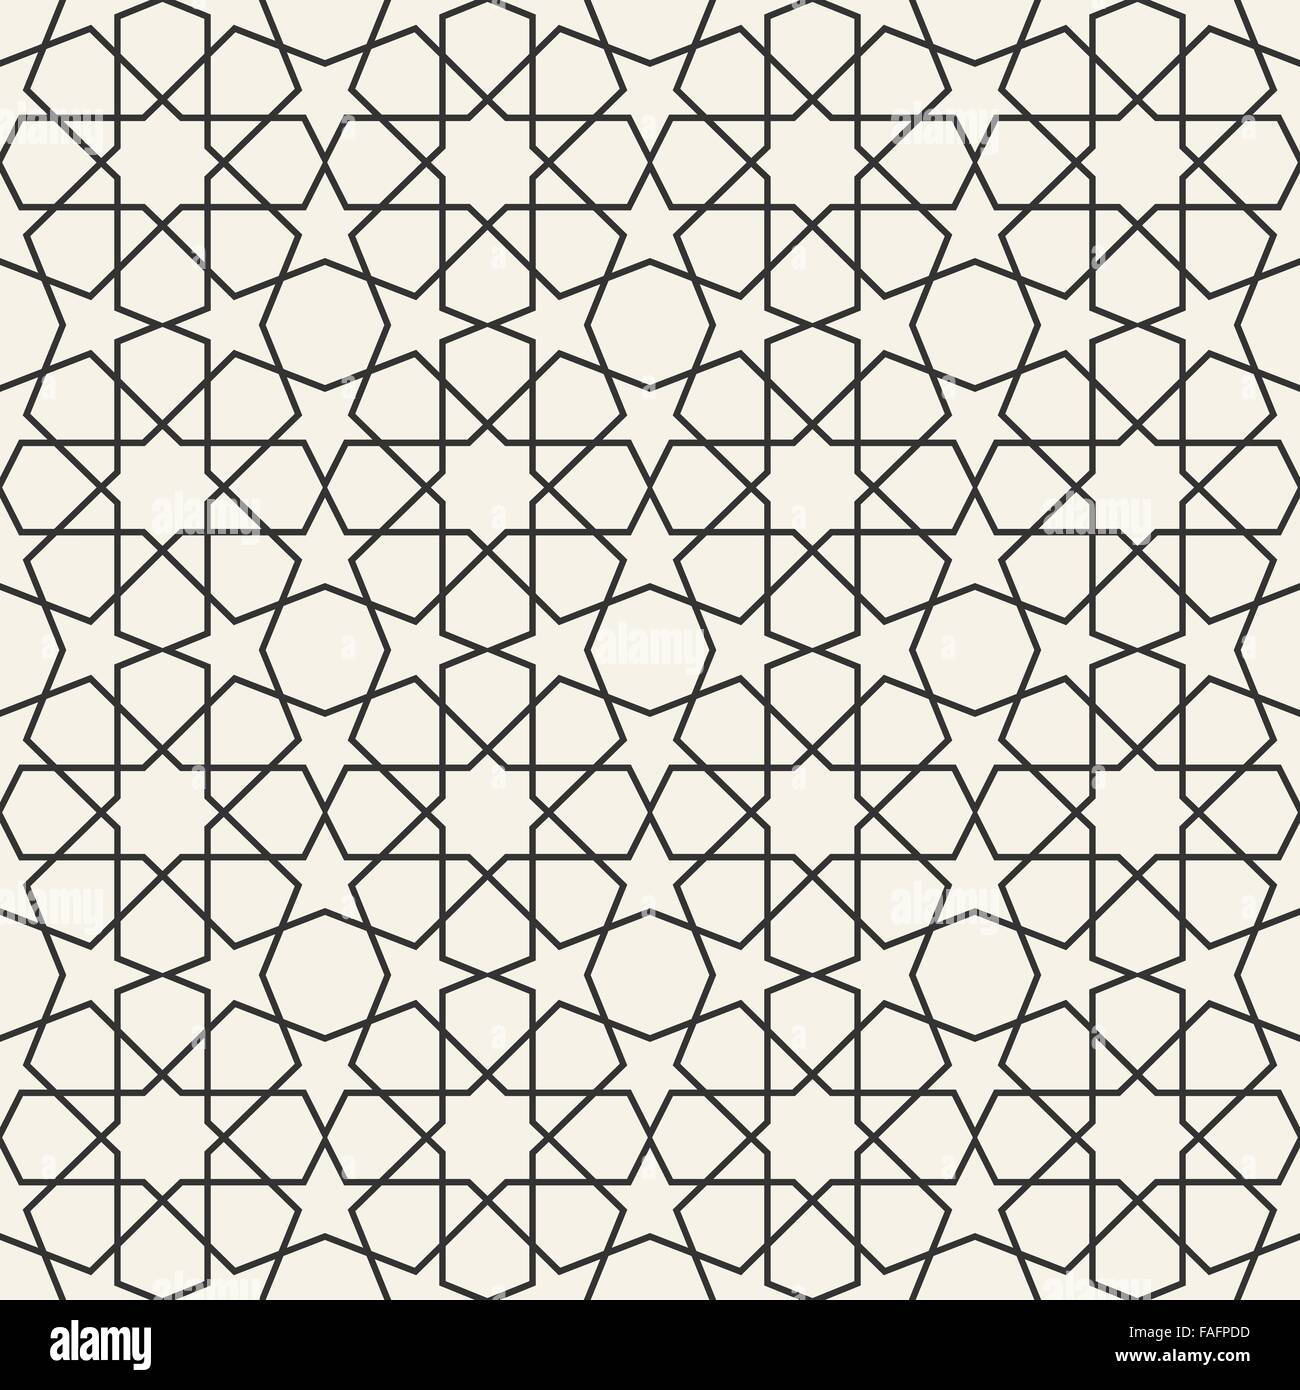 Abstract Seamless Geometric Islamic Wallpaper Pattern For Your